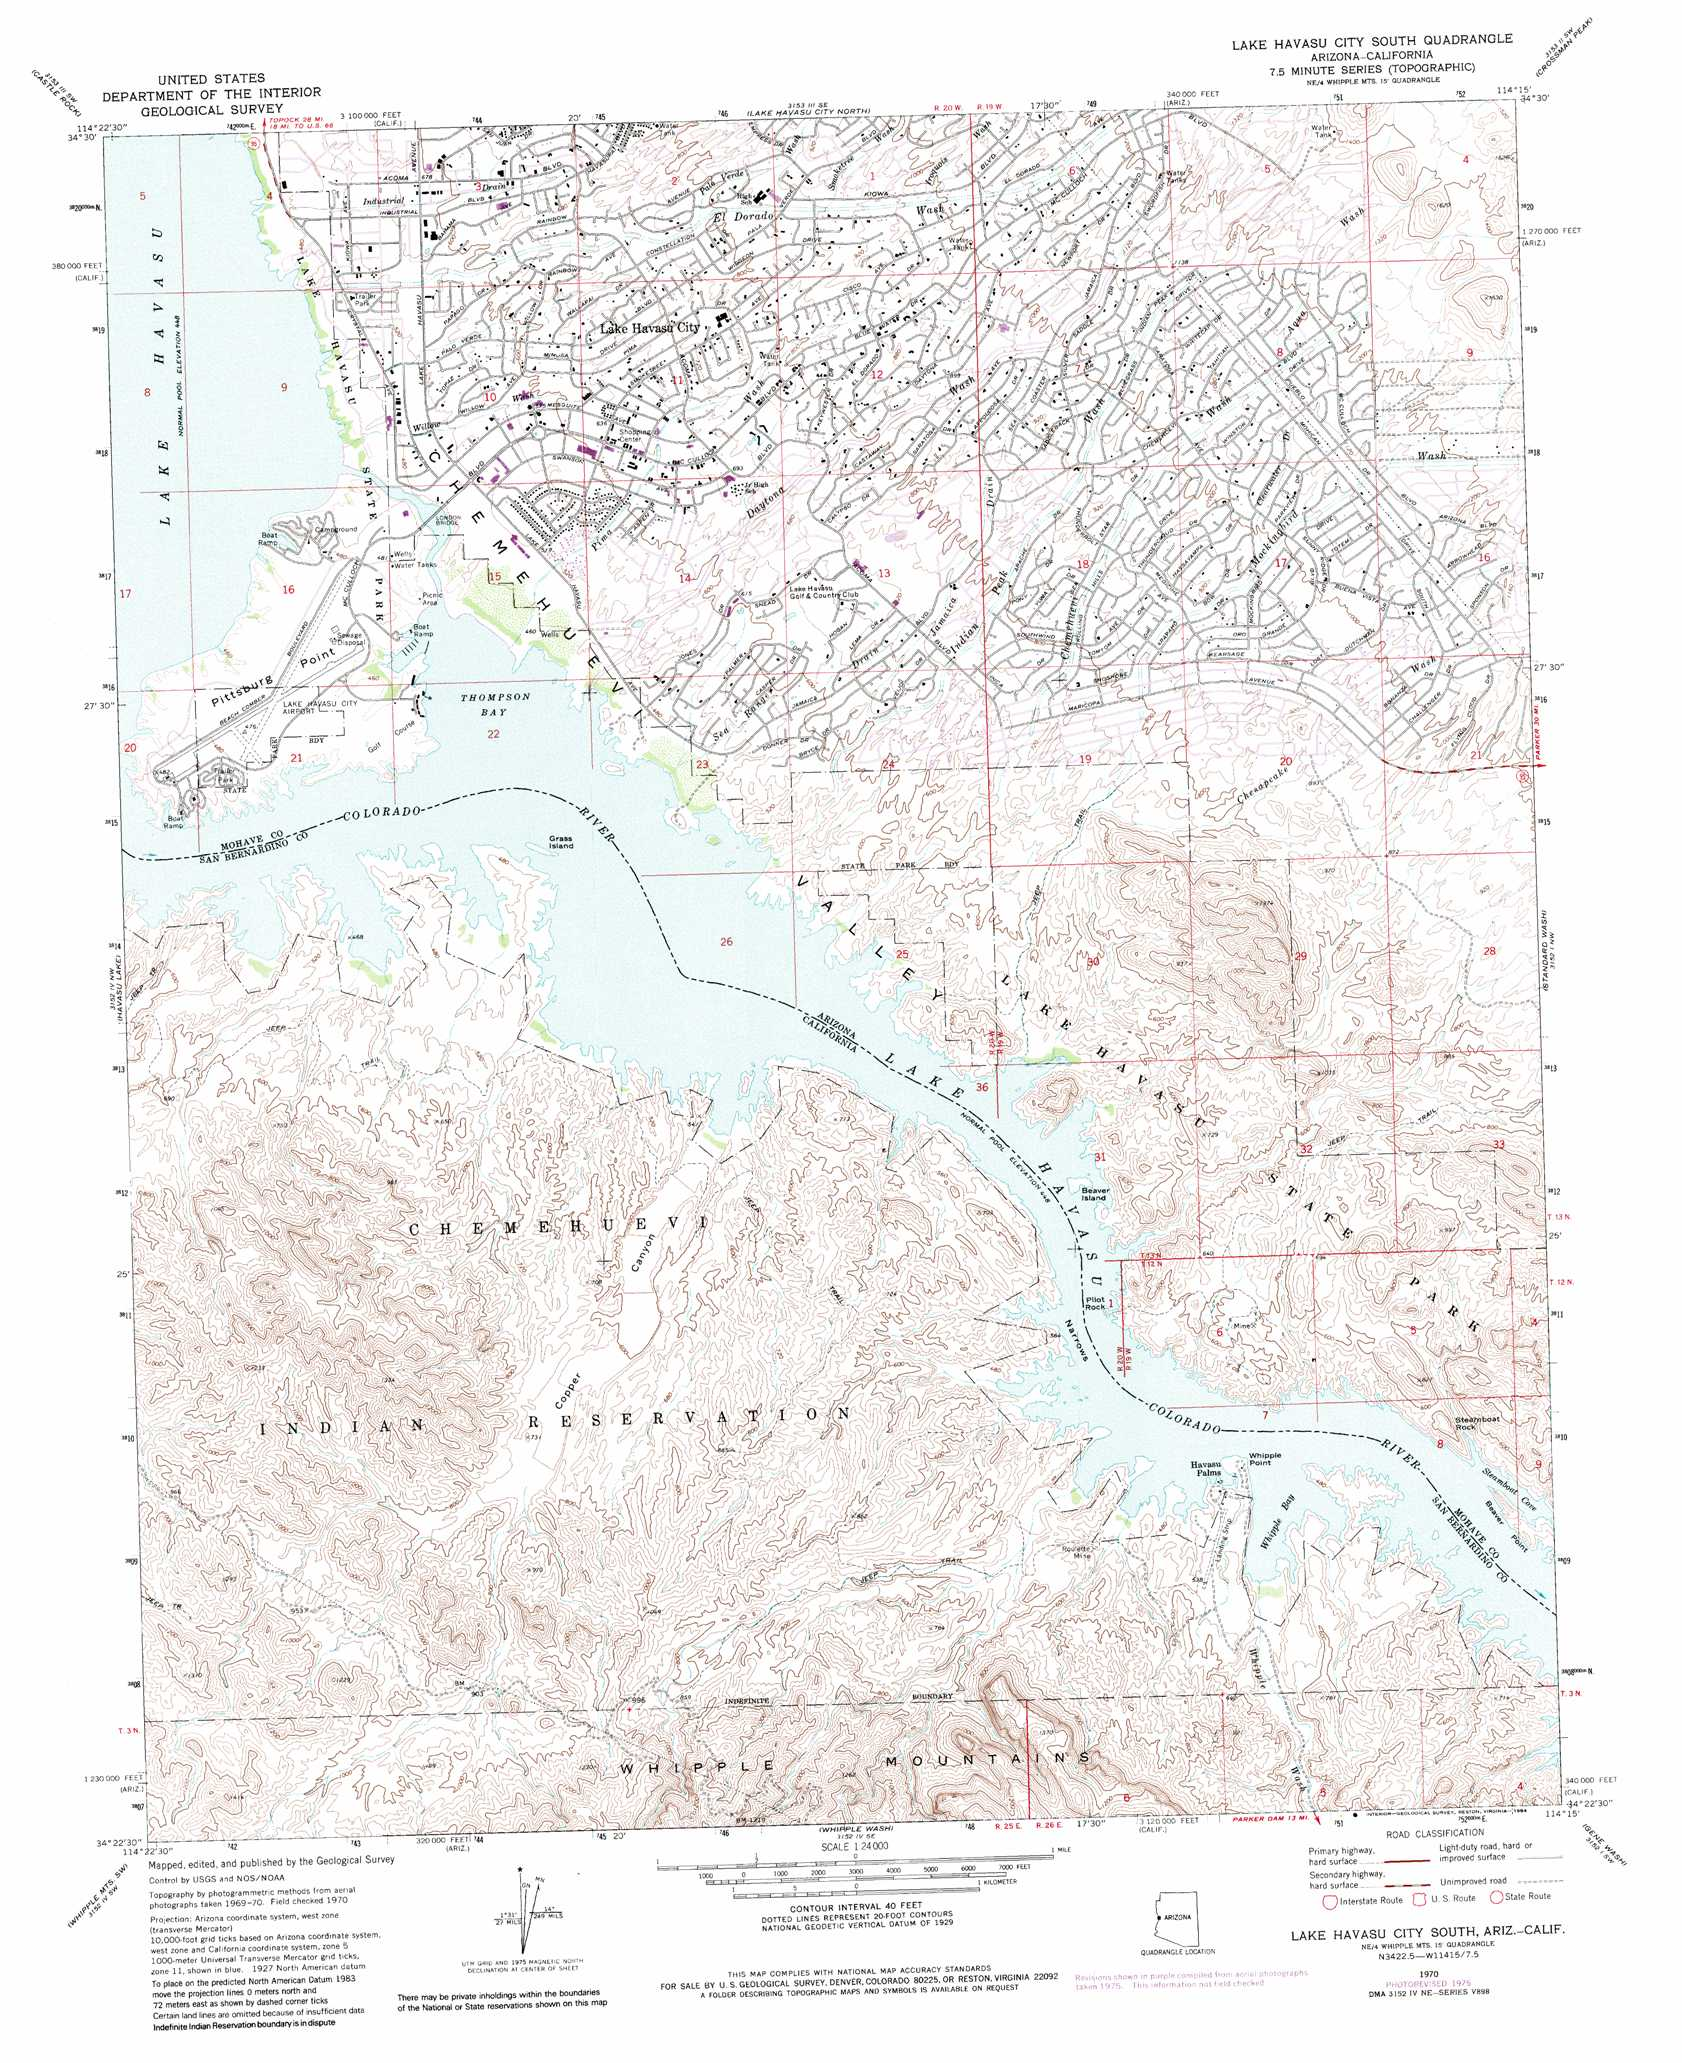 Lake Havasu City South topographic map AZ CA USGS Topo Quad 34114d3